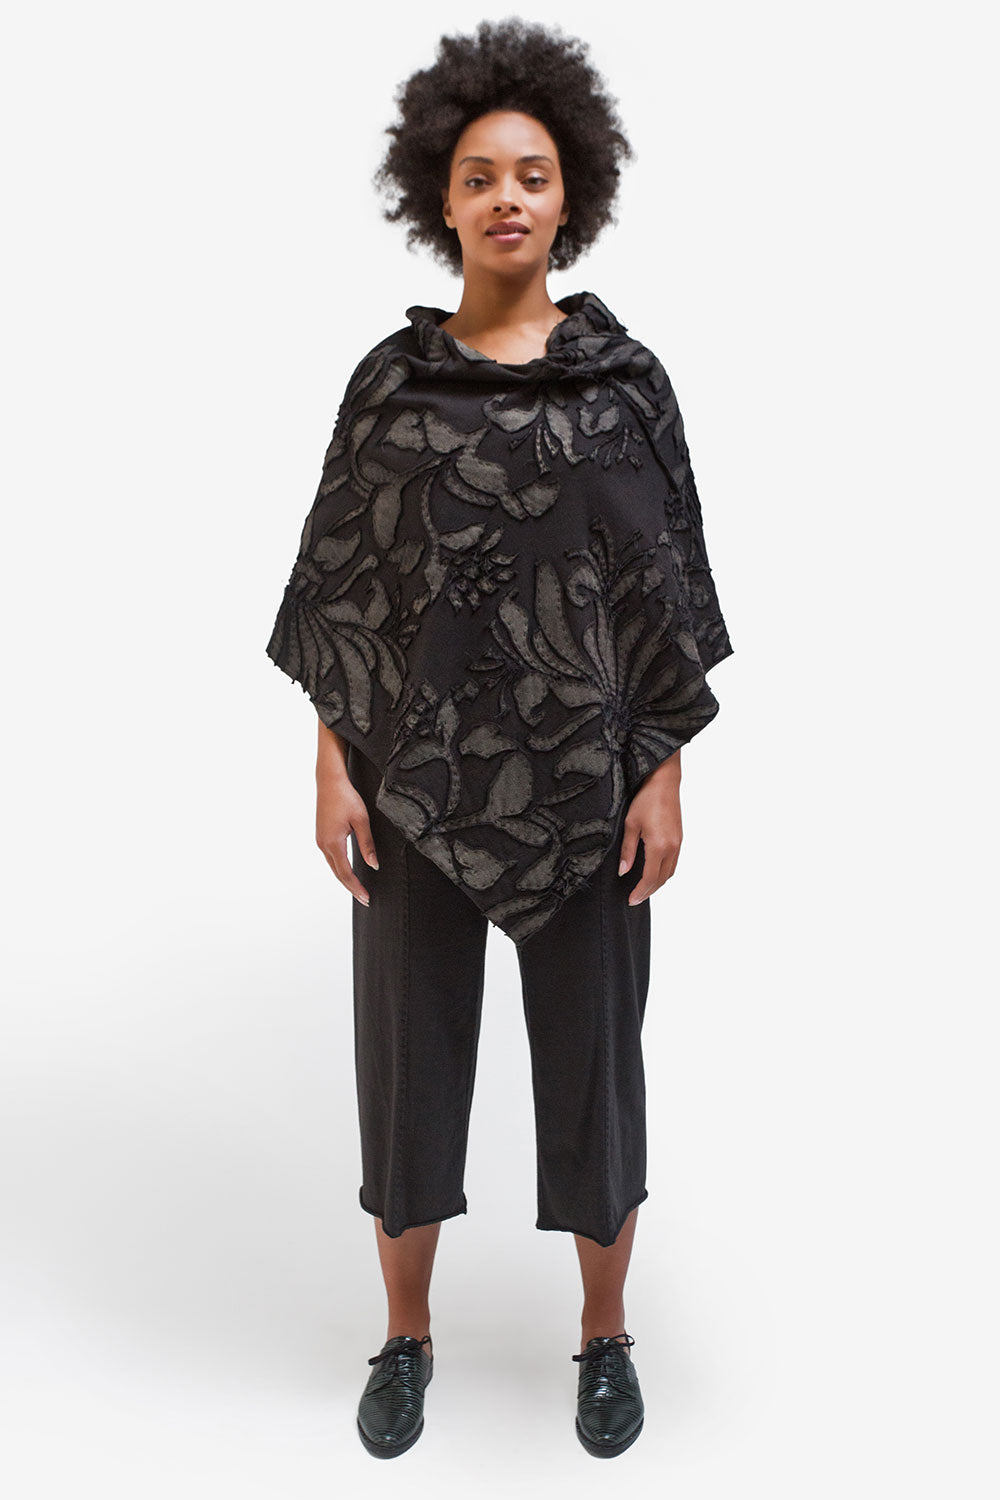 The School of Making The Poncho Kit Hand-Sewn with Floral Pattern and Metallic Textile Paint